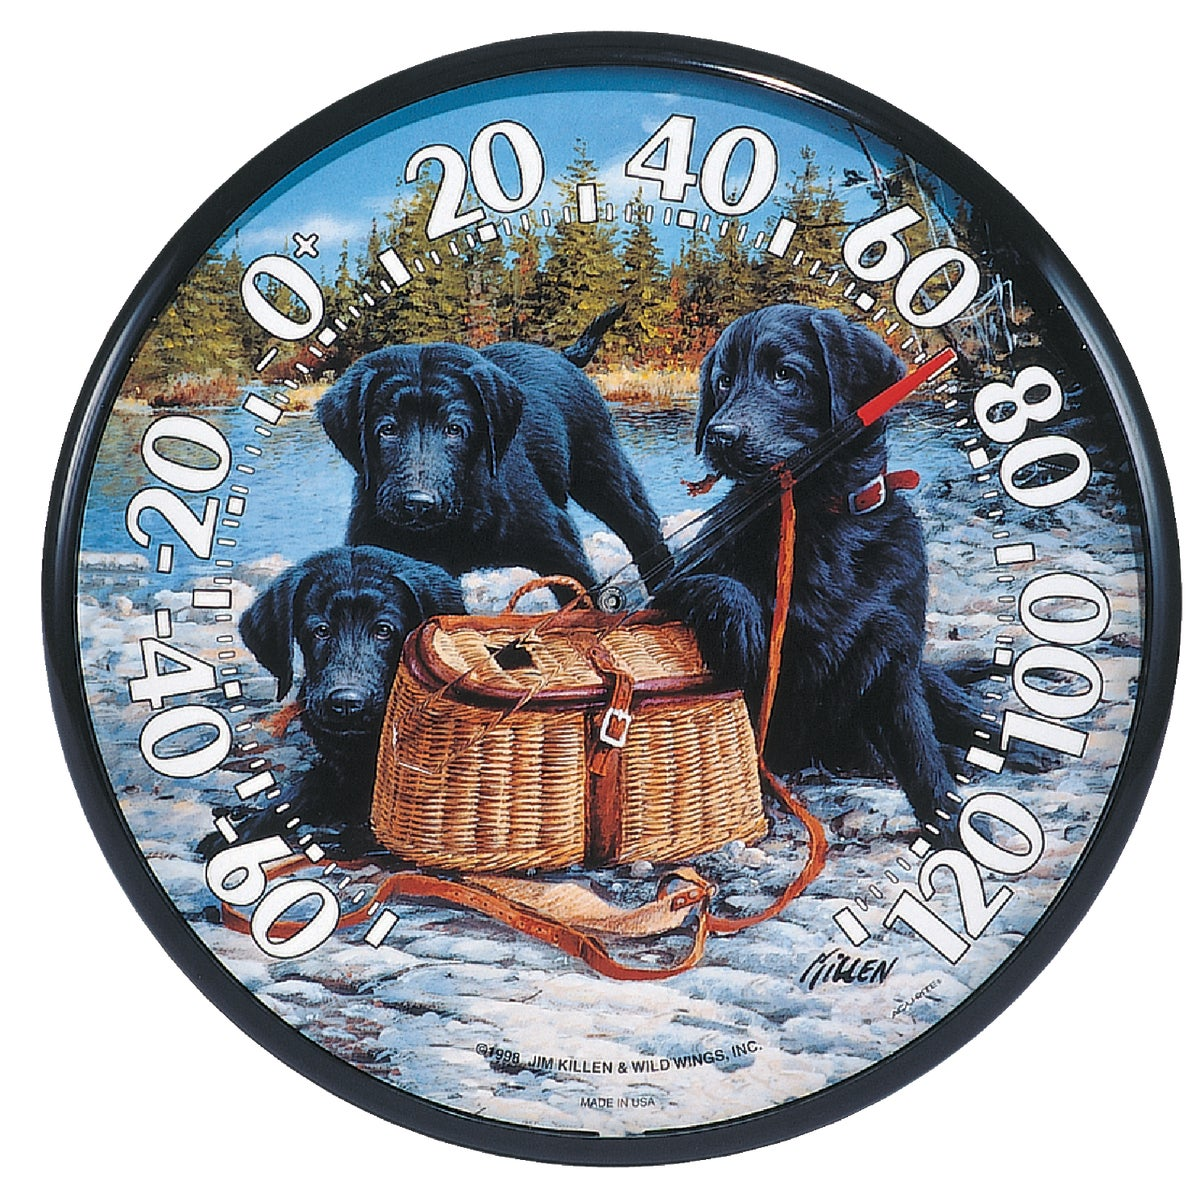 PUPPIES THERMOMETER - 01678 by Chaney Instrument Co